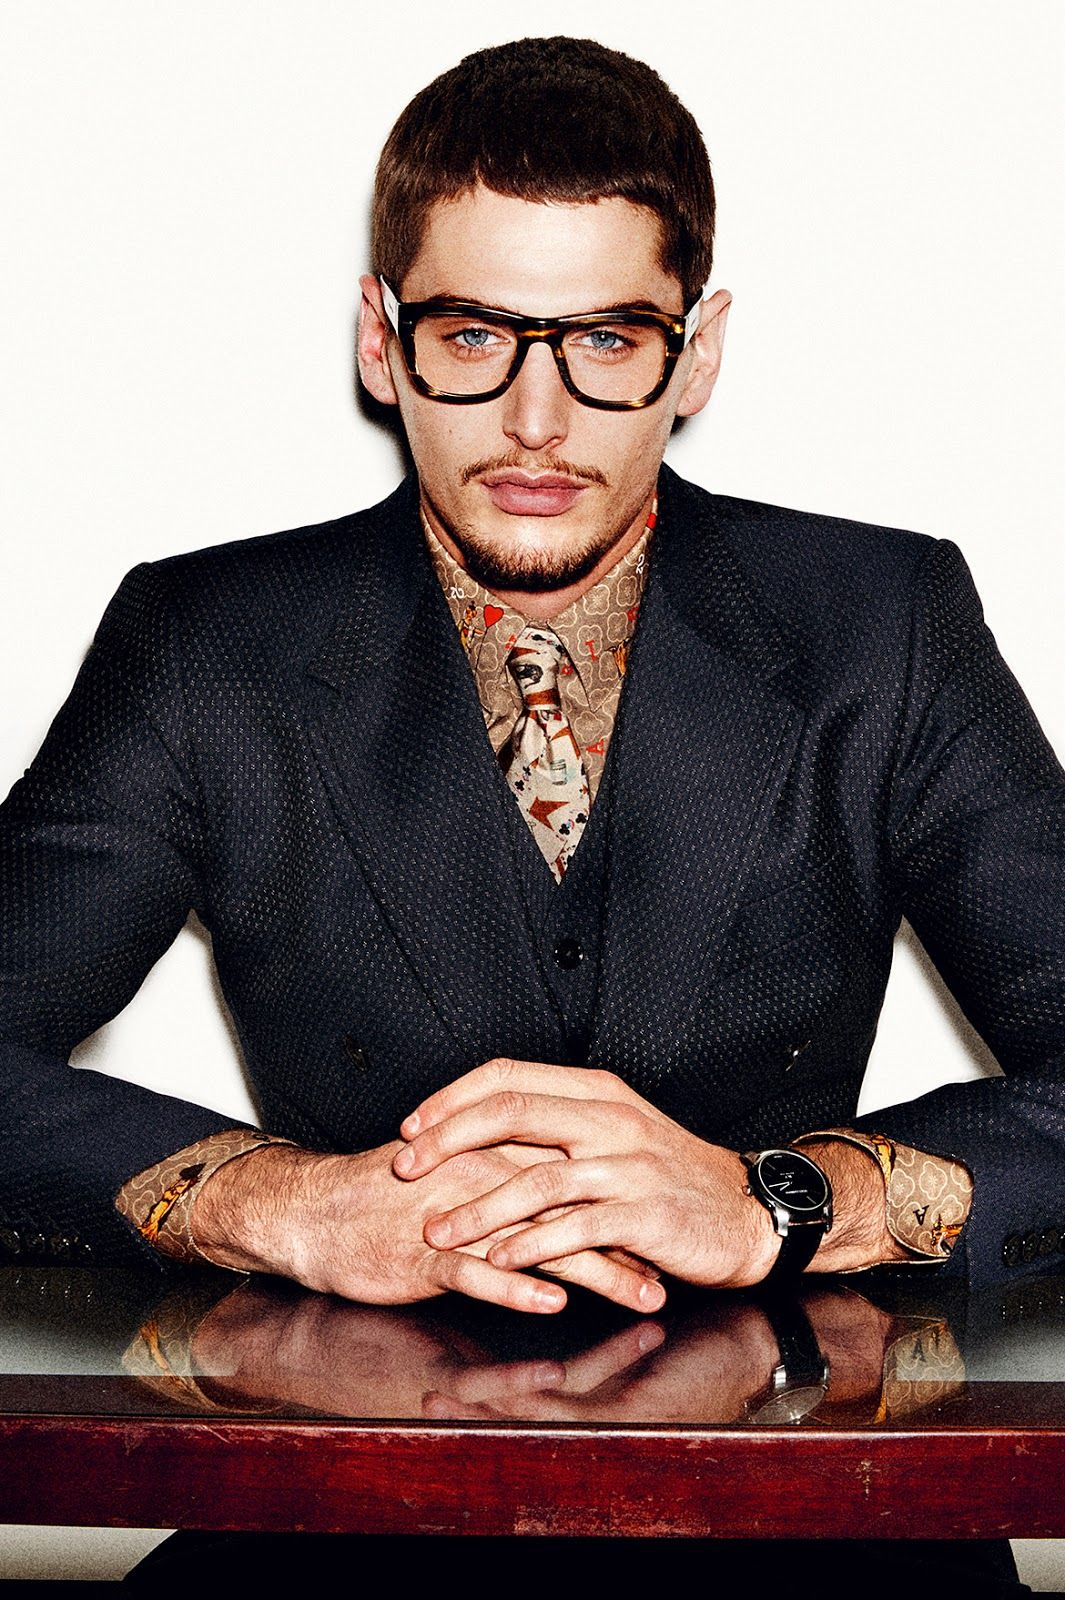 Haircuts for men with glasses dolceugabbana fallwinter  lookbook  homotography  style